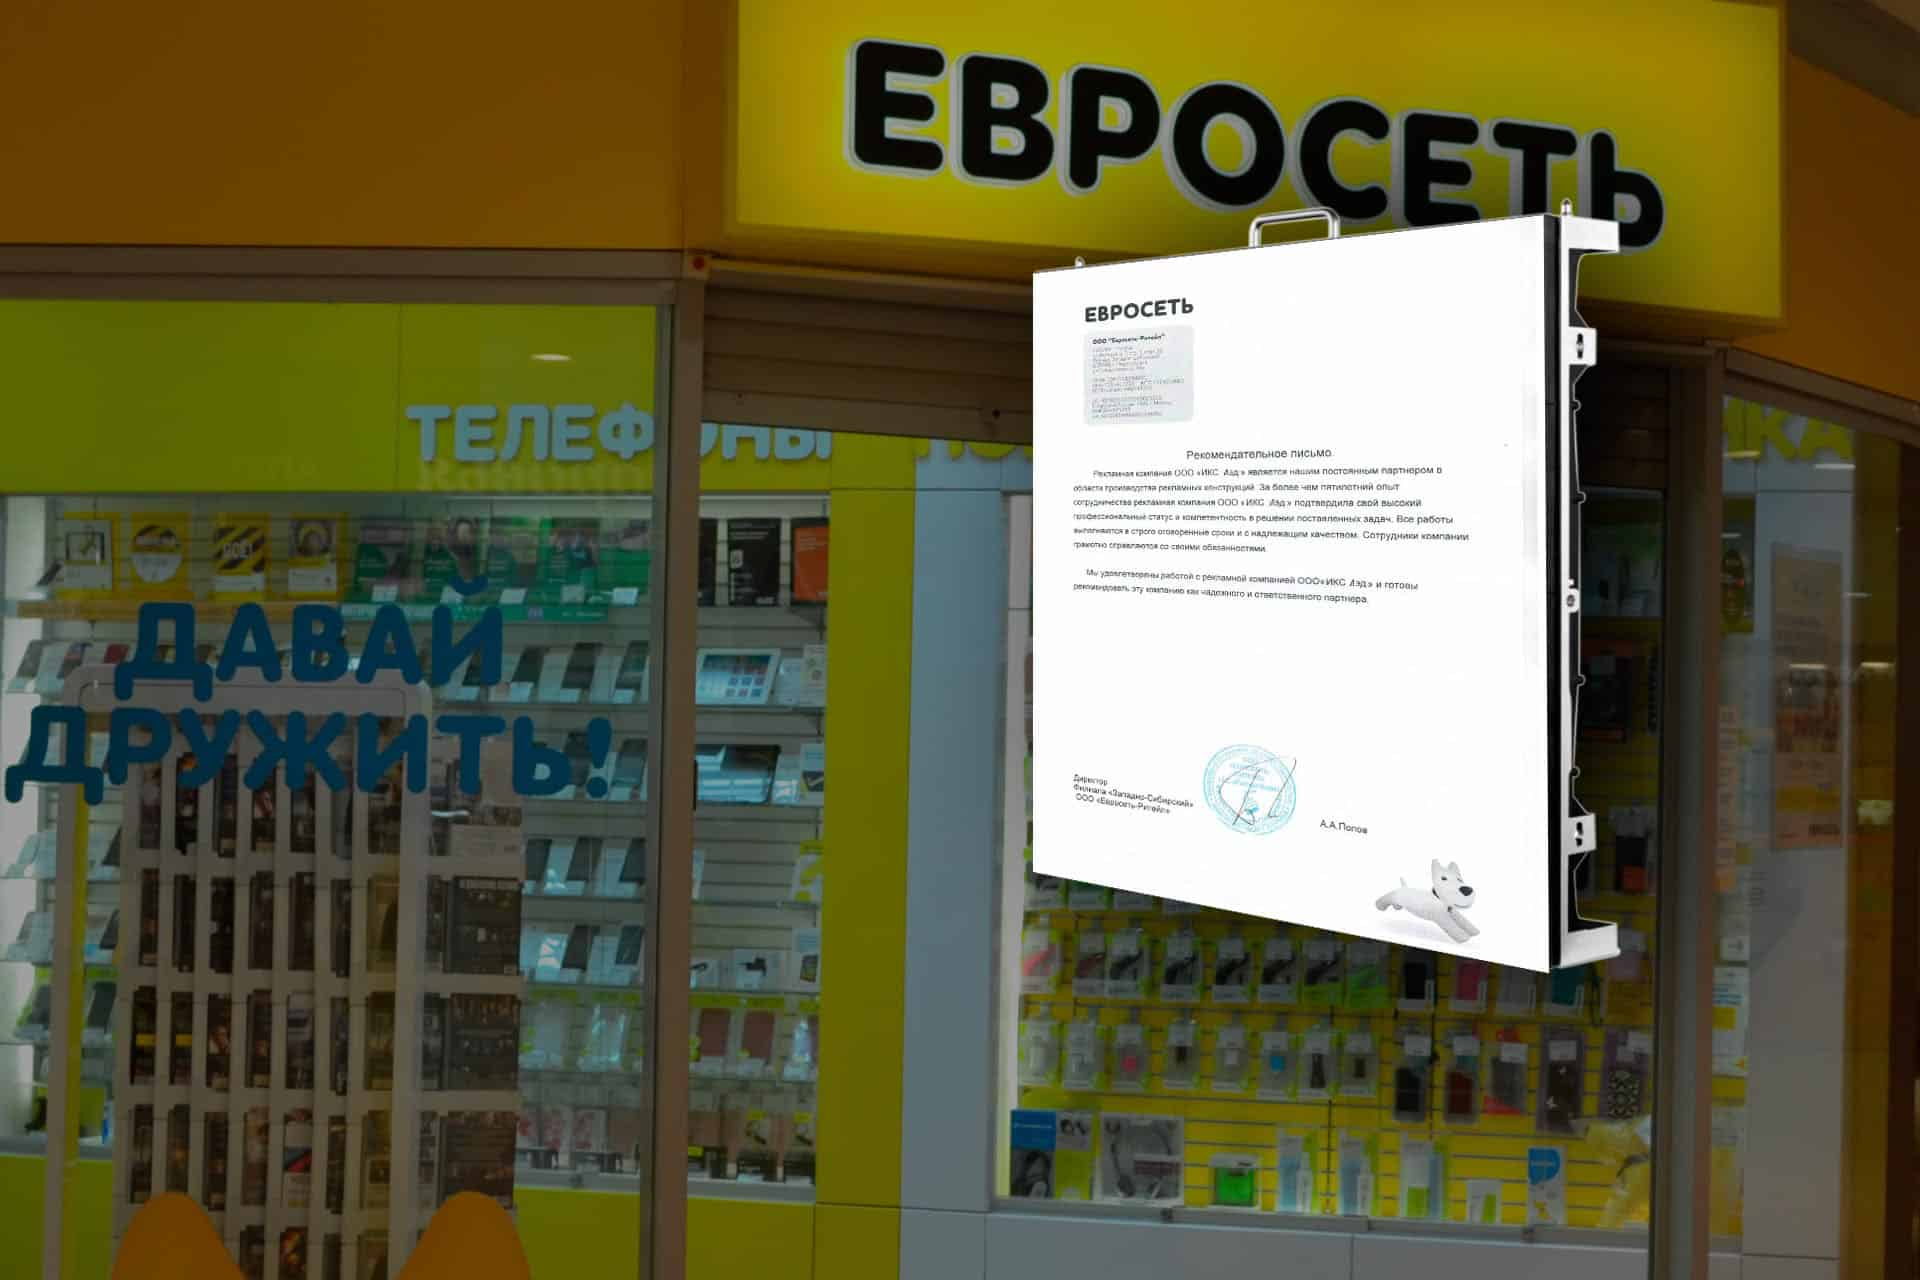 A letter of thanks from Евросеть.